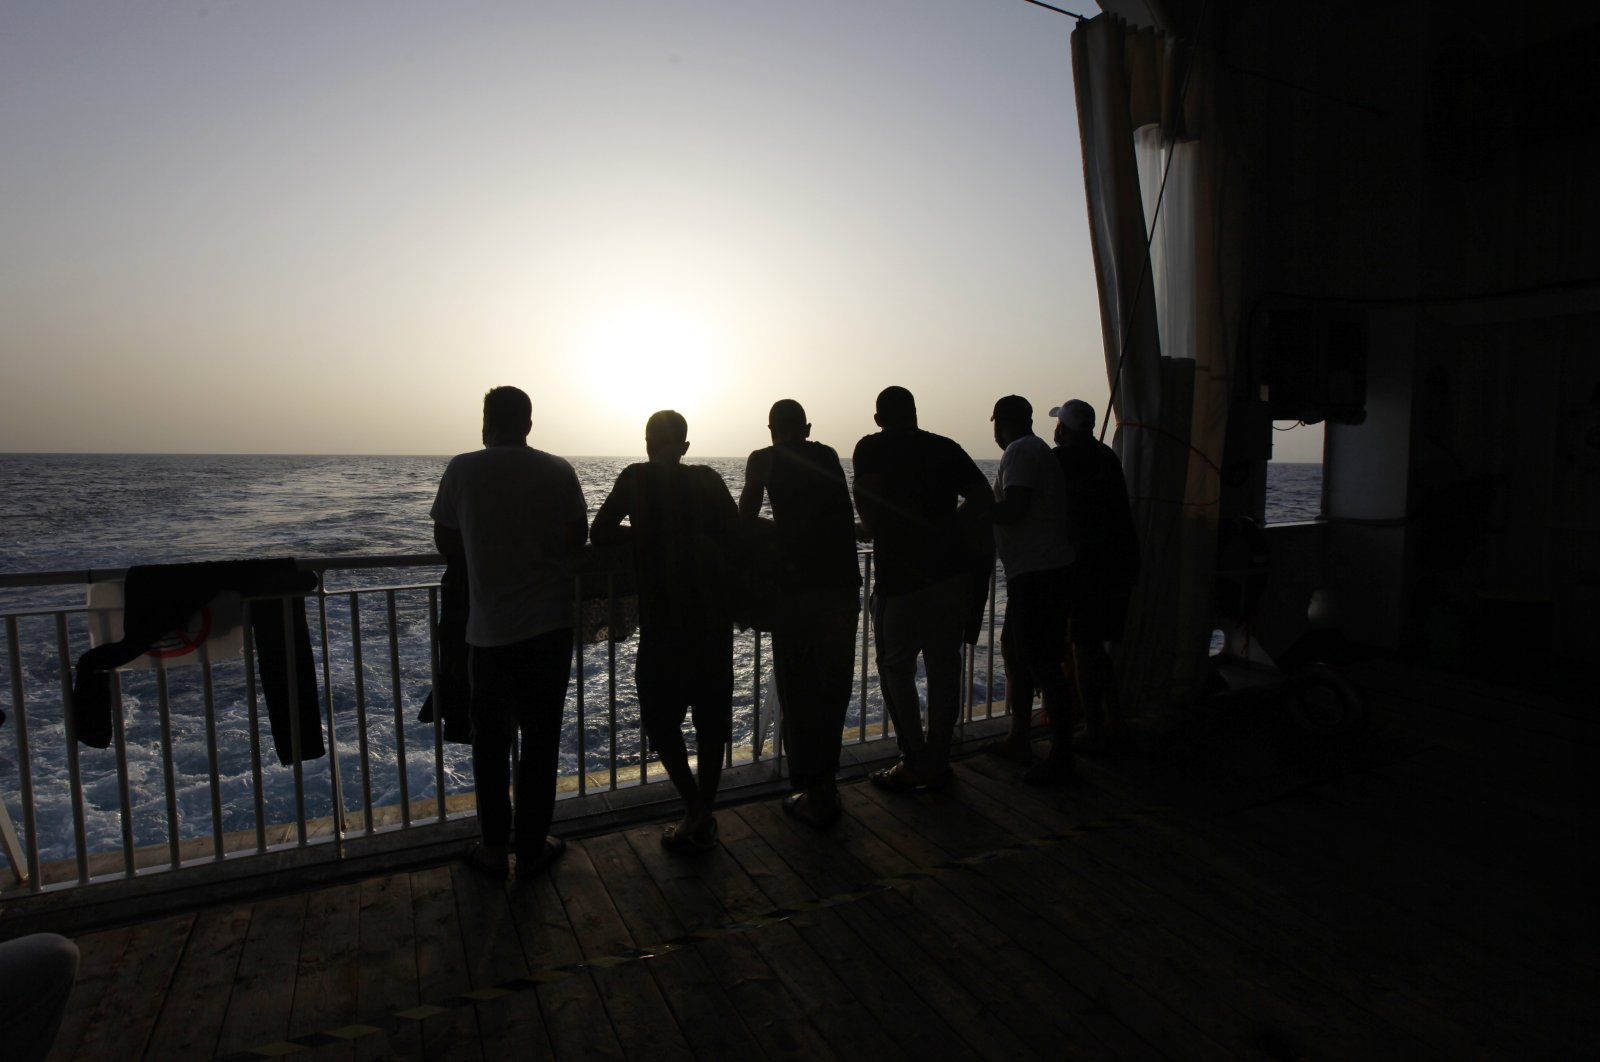 Arab migrants, including three Libyans, two Tunisians and a Moroccan, gaze at the Mediterranean Sea, on the deck of the Geo Barents, a rescue vessel operated by MSF (Doctors Without Borders) off Libya, in the Central Mediterranean route, Sept. 22, 2021. (AP Photo)